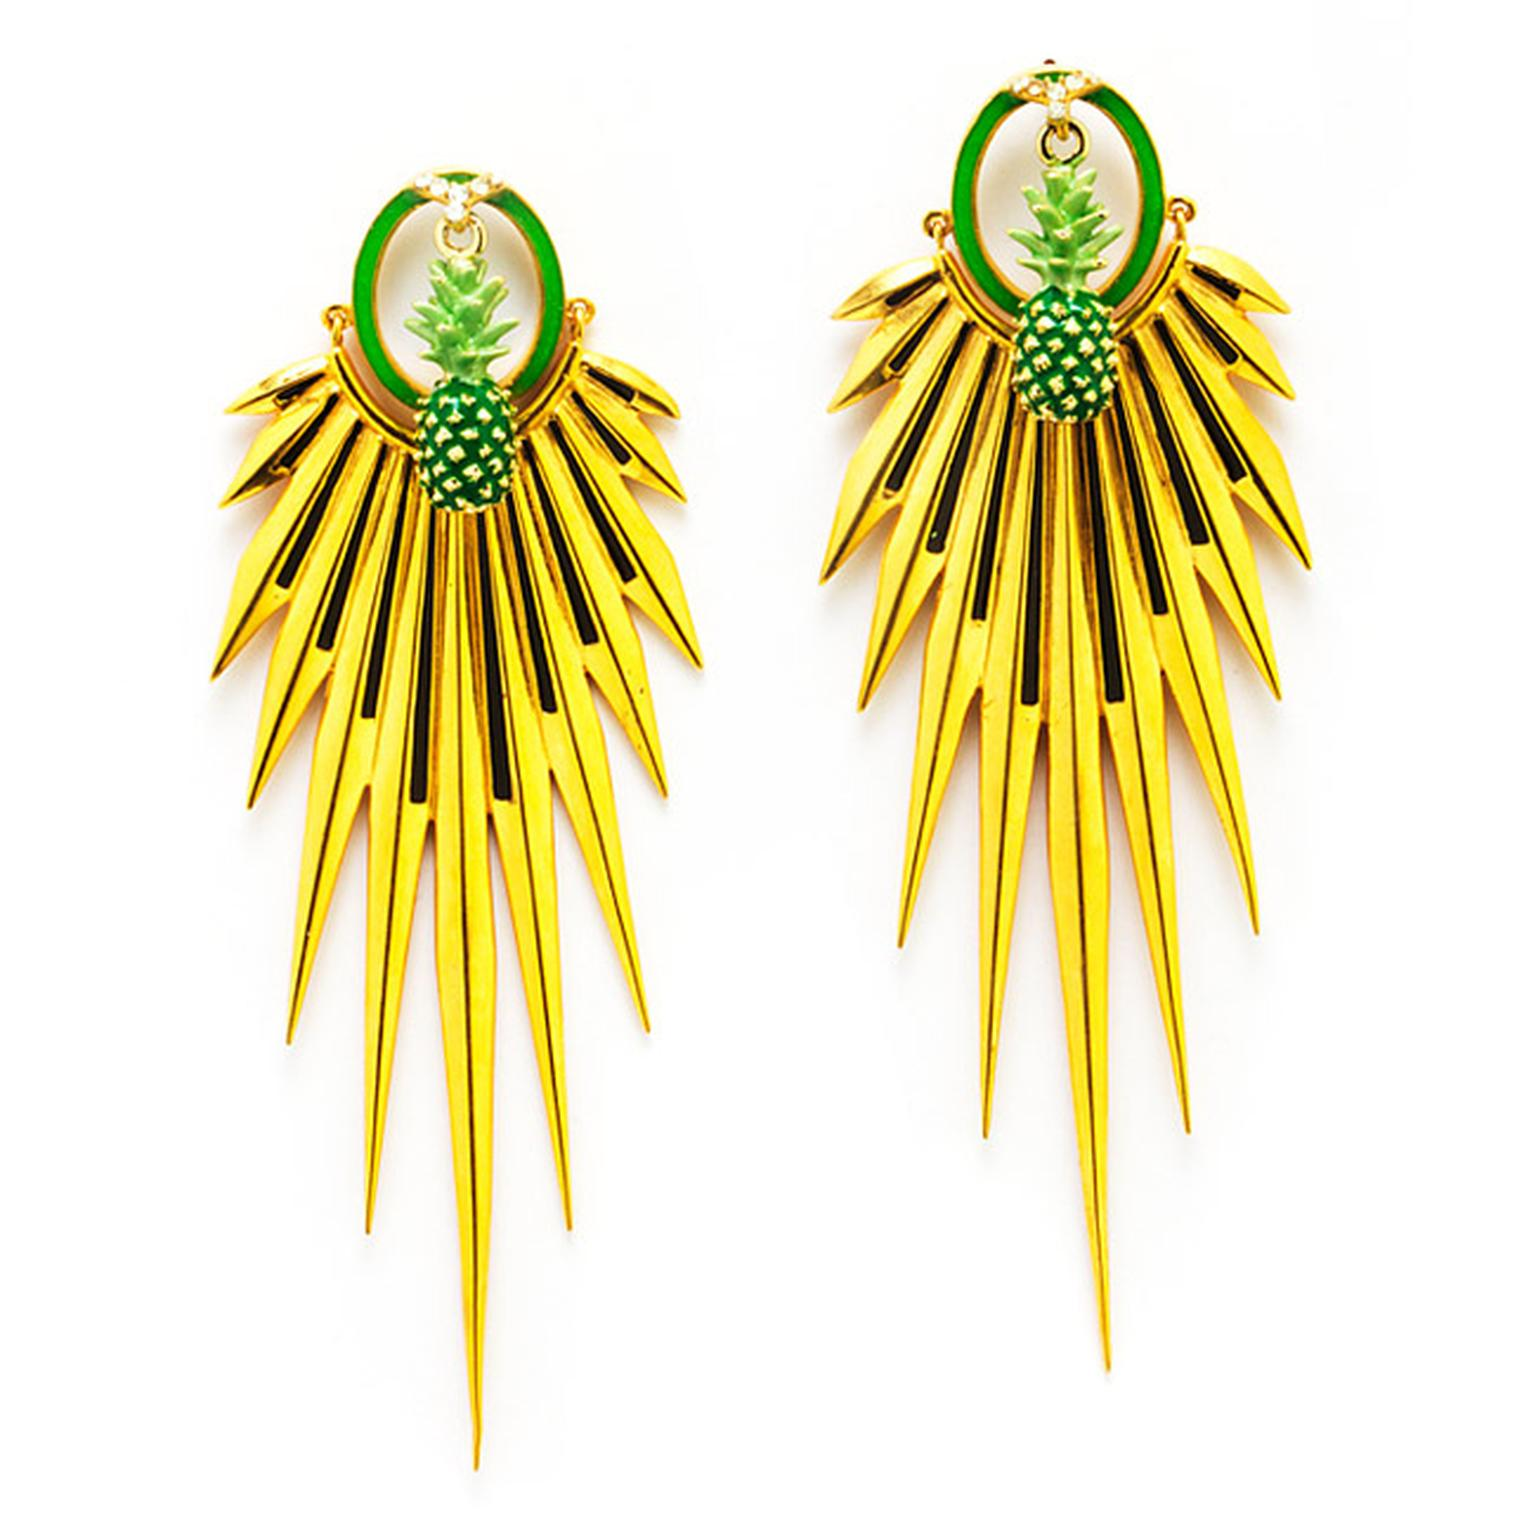 Manish-Arora-Amrapali-Earrings-Main